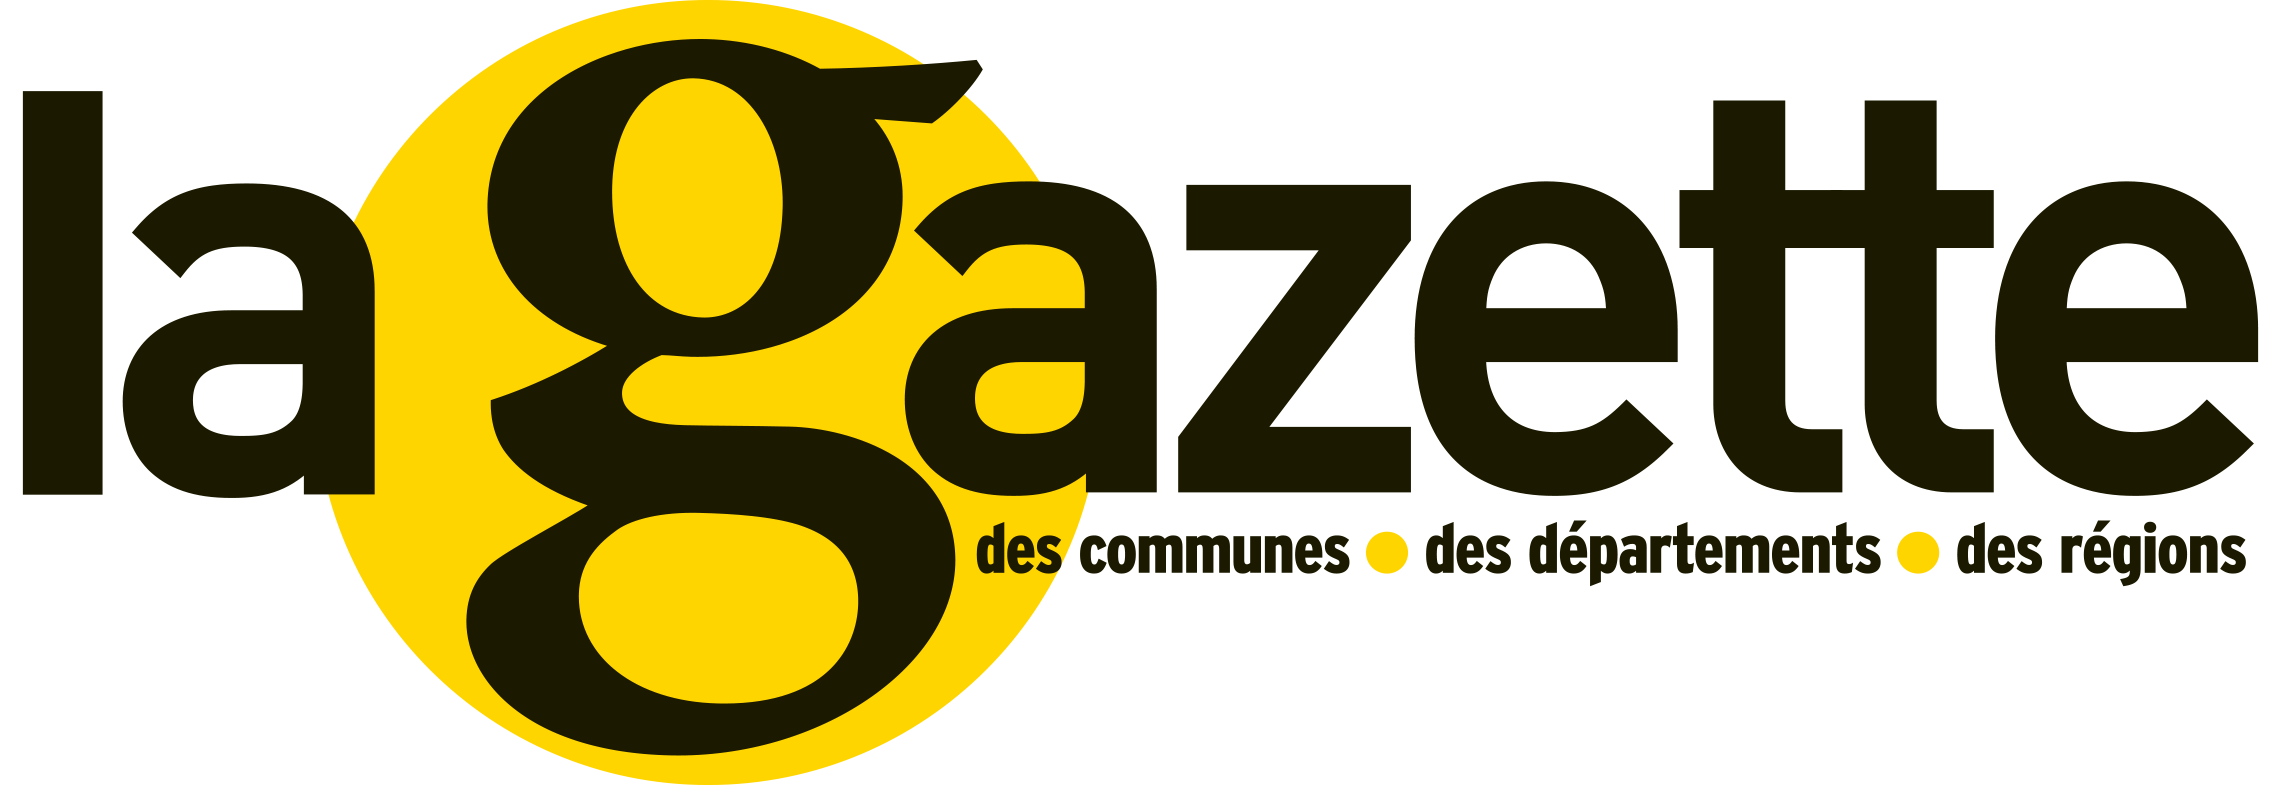 The Gazette des communes, departments and regions is a weekly French magazine published by Groupe Infopro Digital